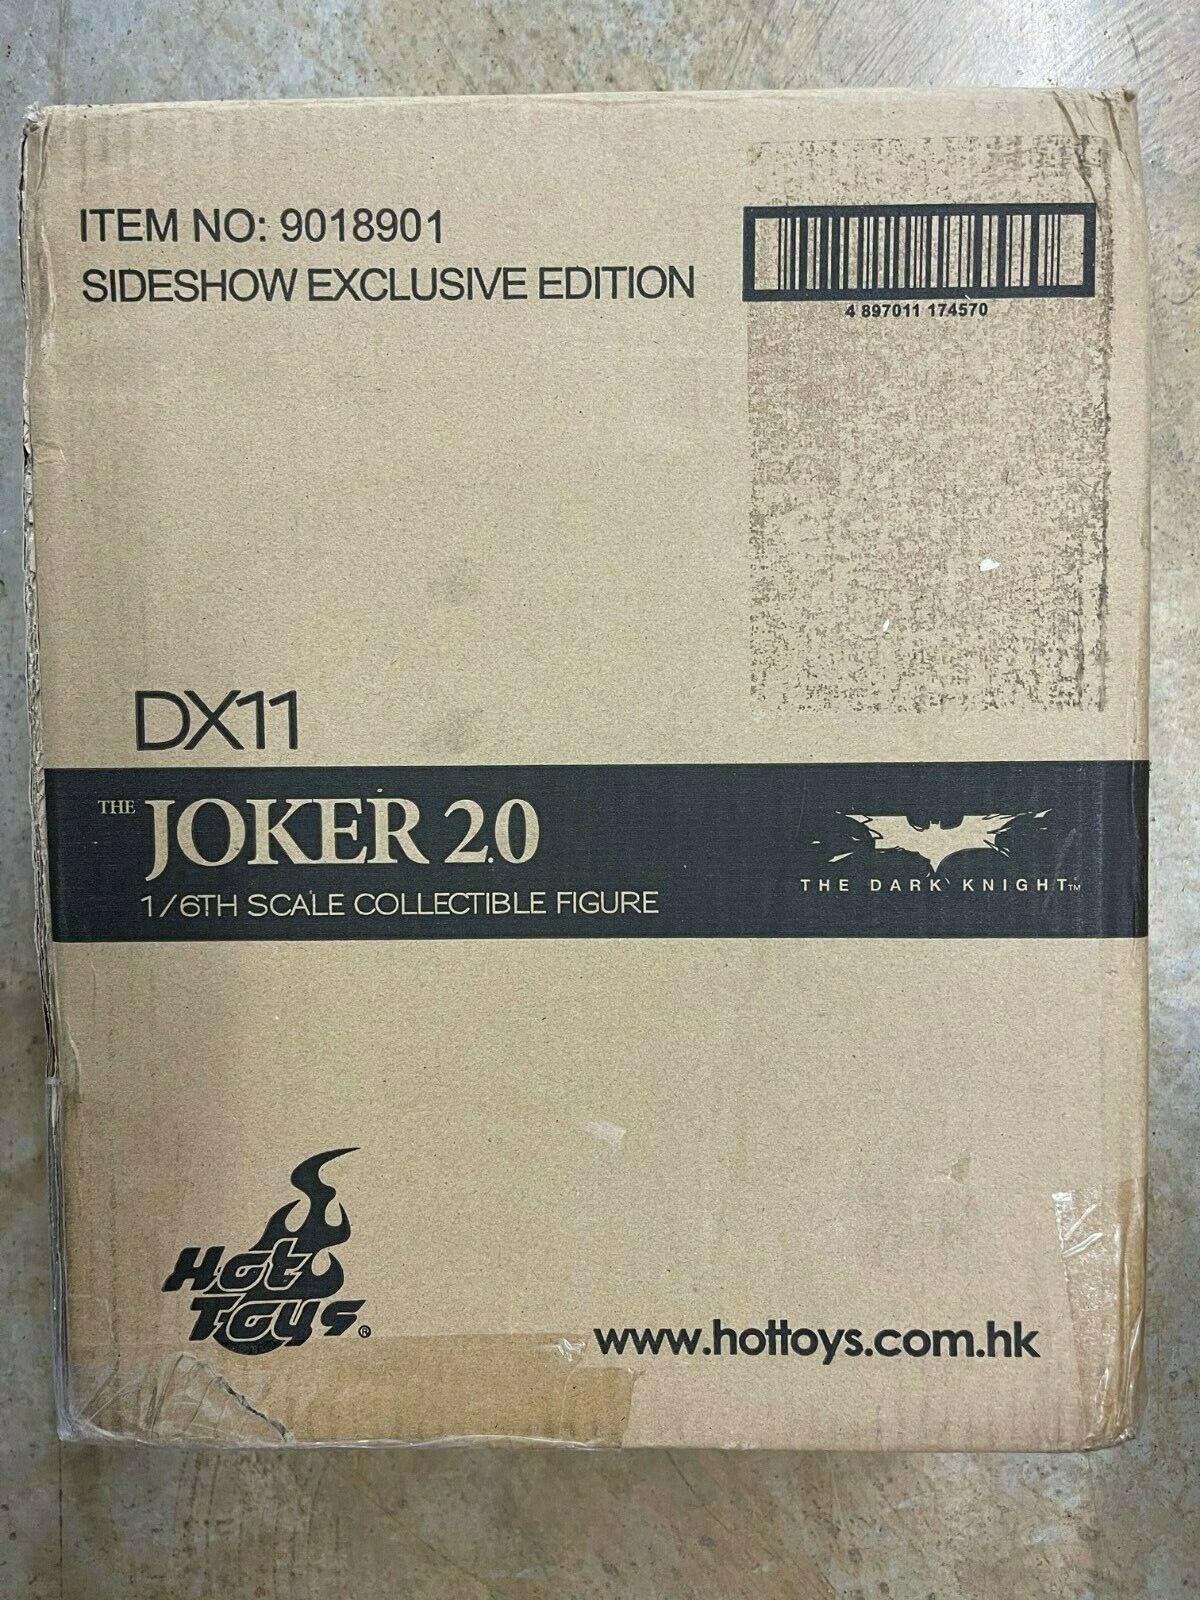 HOT TOYS JOKER 2.0 DX11 The Dark Knight Sideshow Exclusive Edition 100% COMPLETE on eBay thumbnail